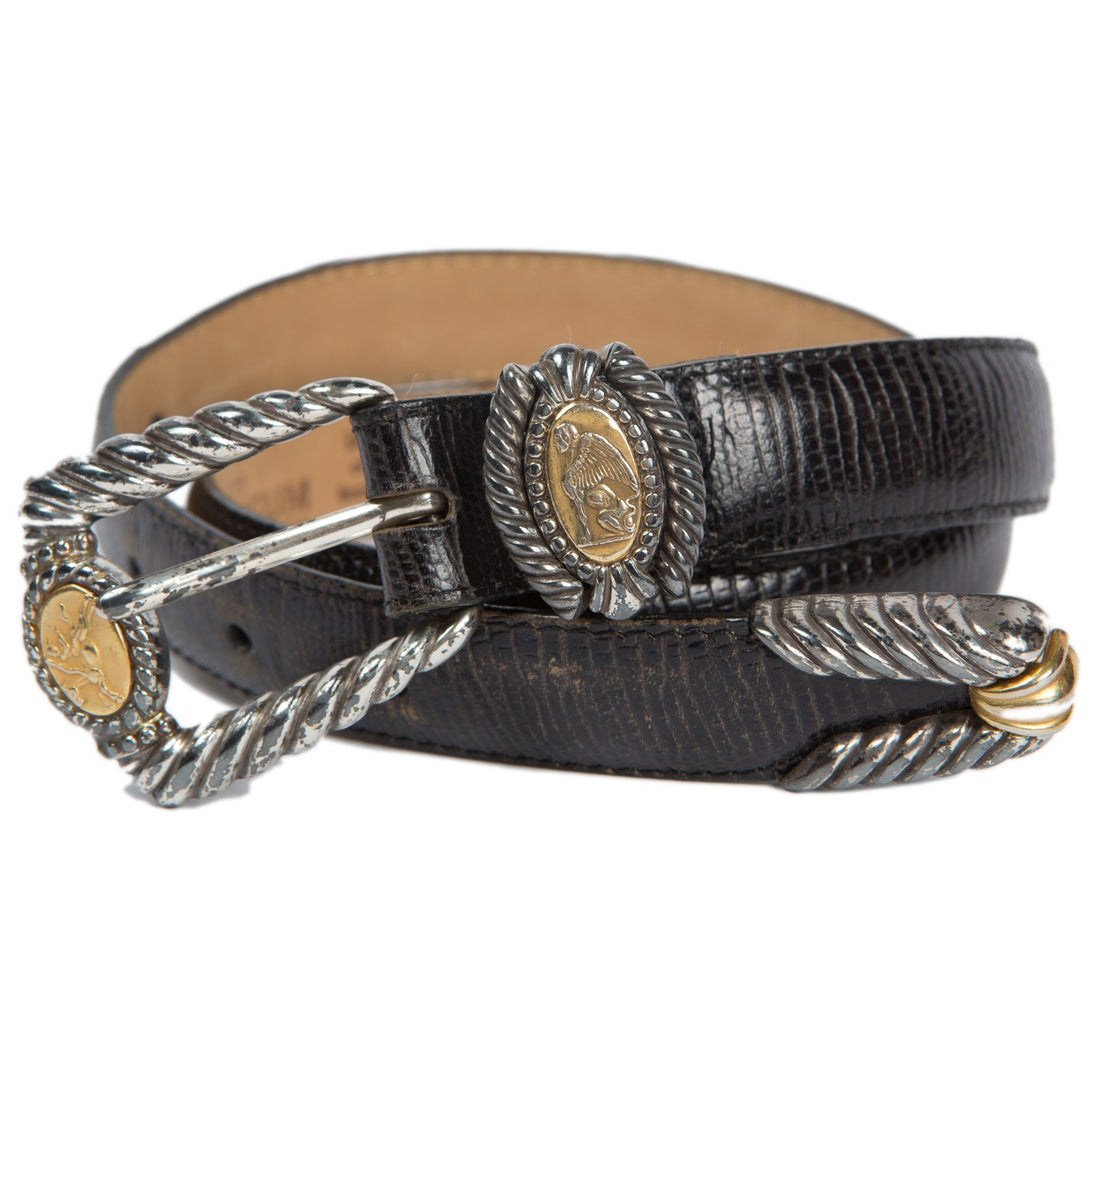 Vintage Brighton Museum Collection Belt - Vintage: Women's - Iron and Resin